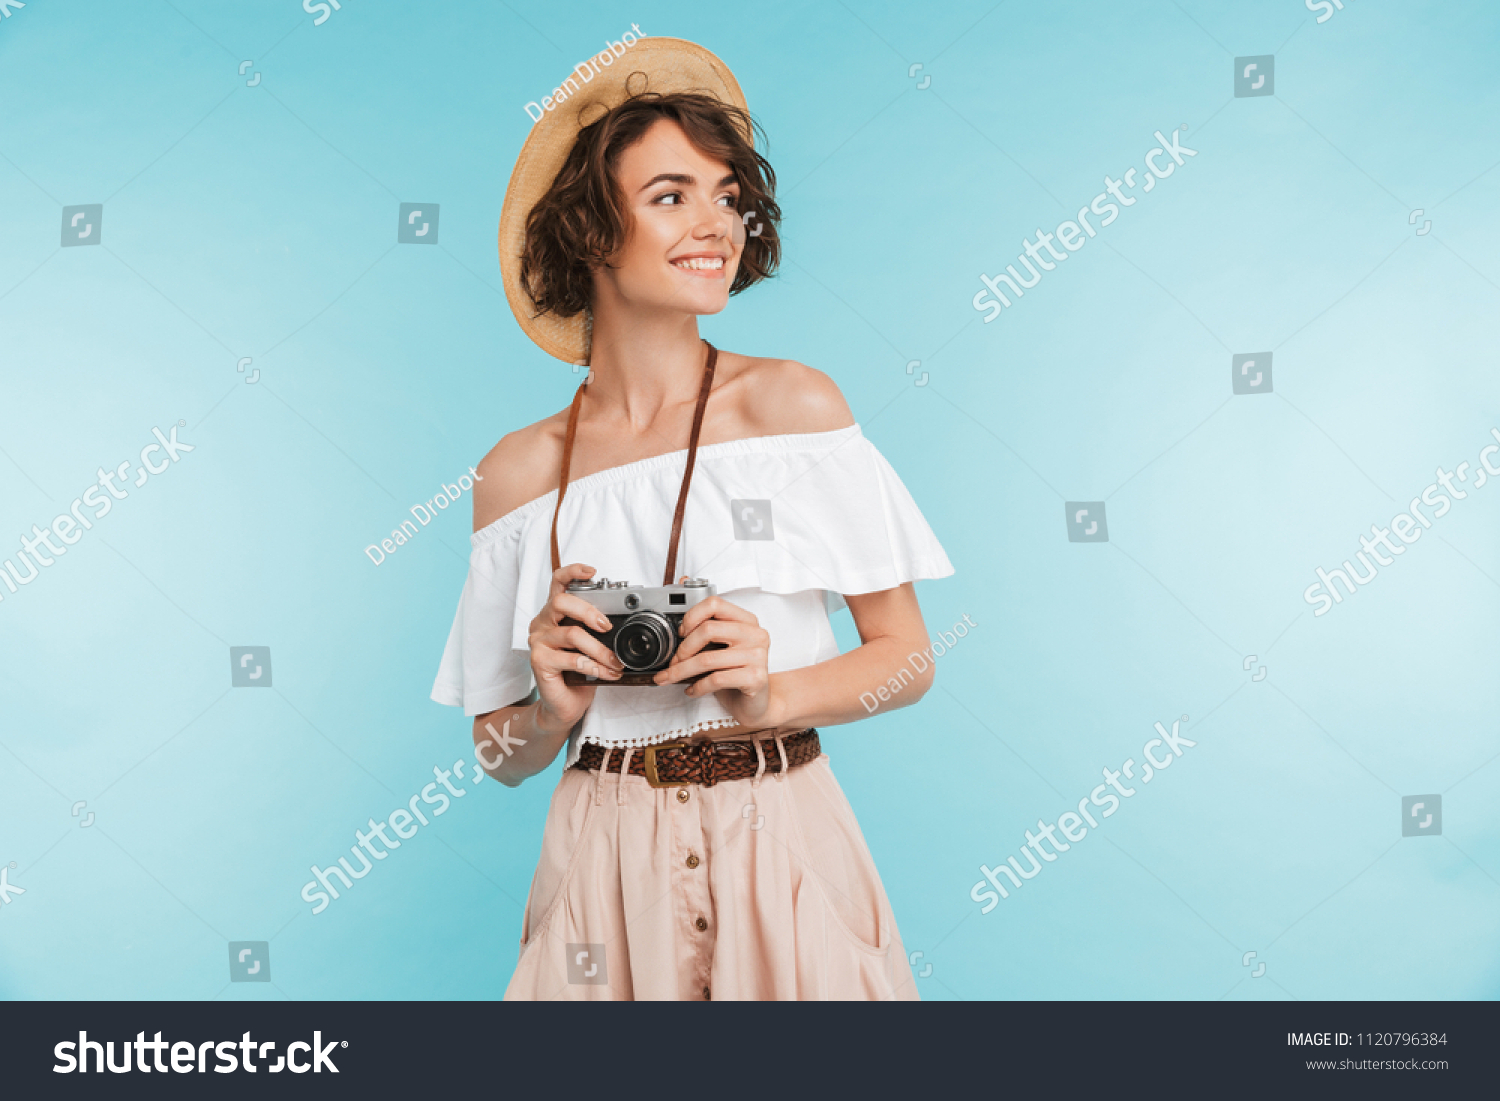 Portrait of a smiling young woman in summer hat standing with photo camera and looking away at copy space isolated over blue background